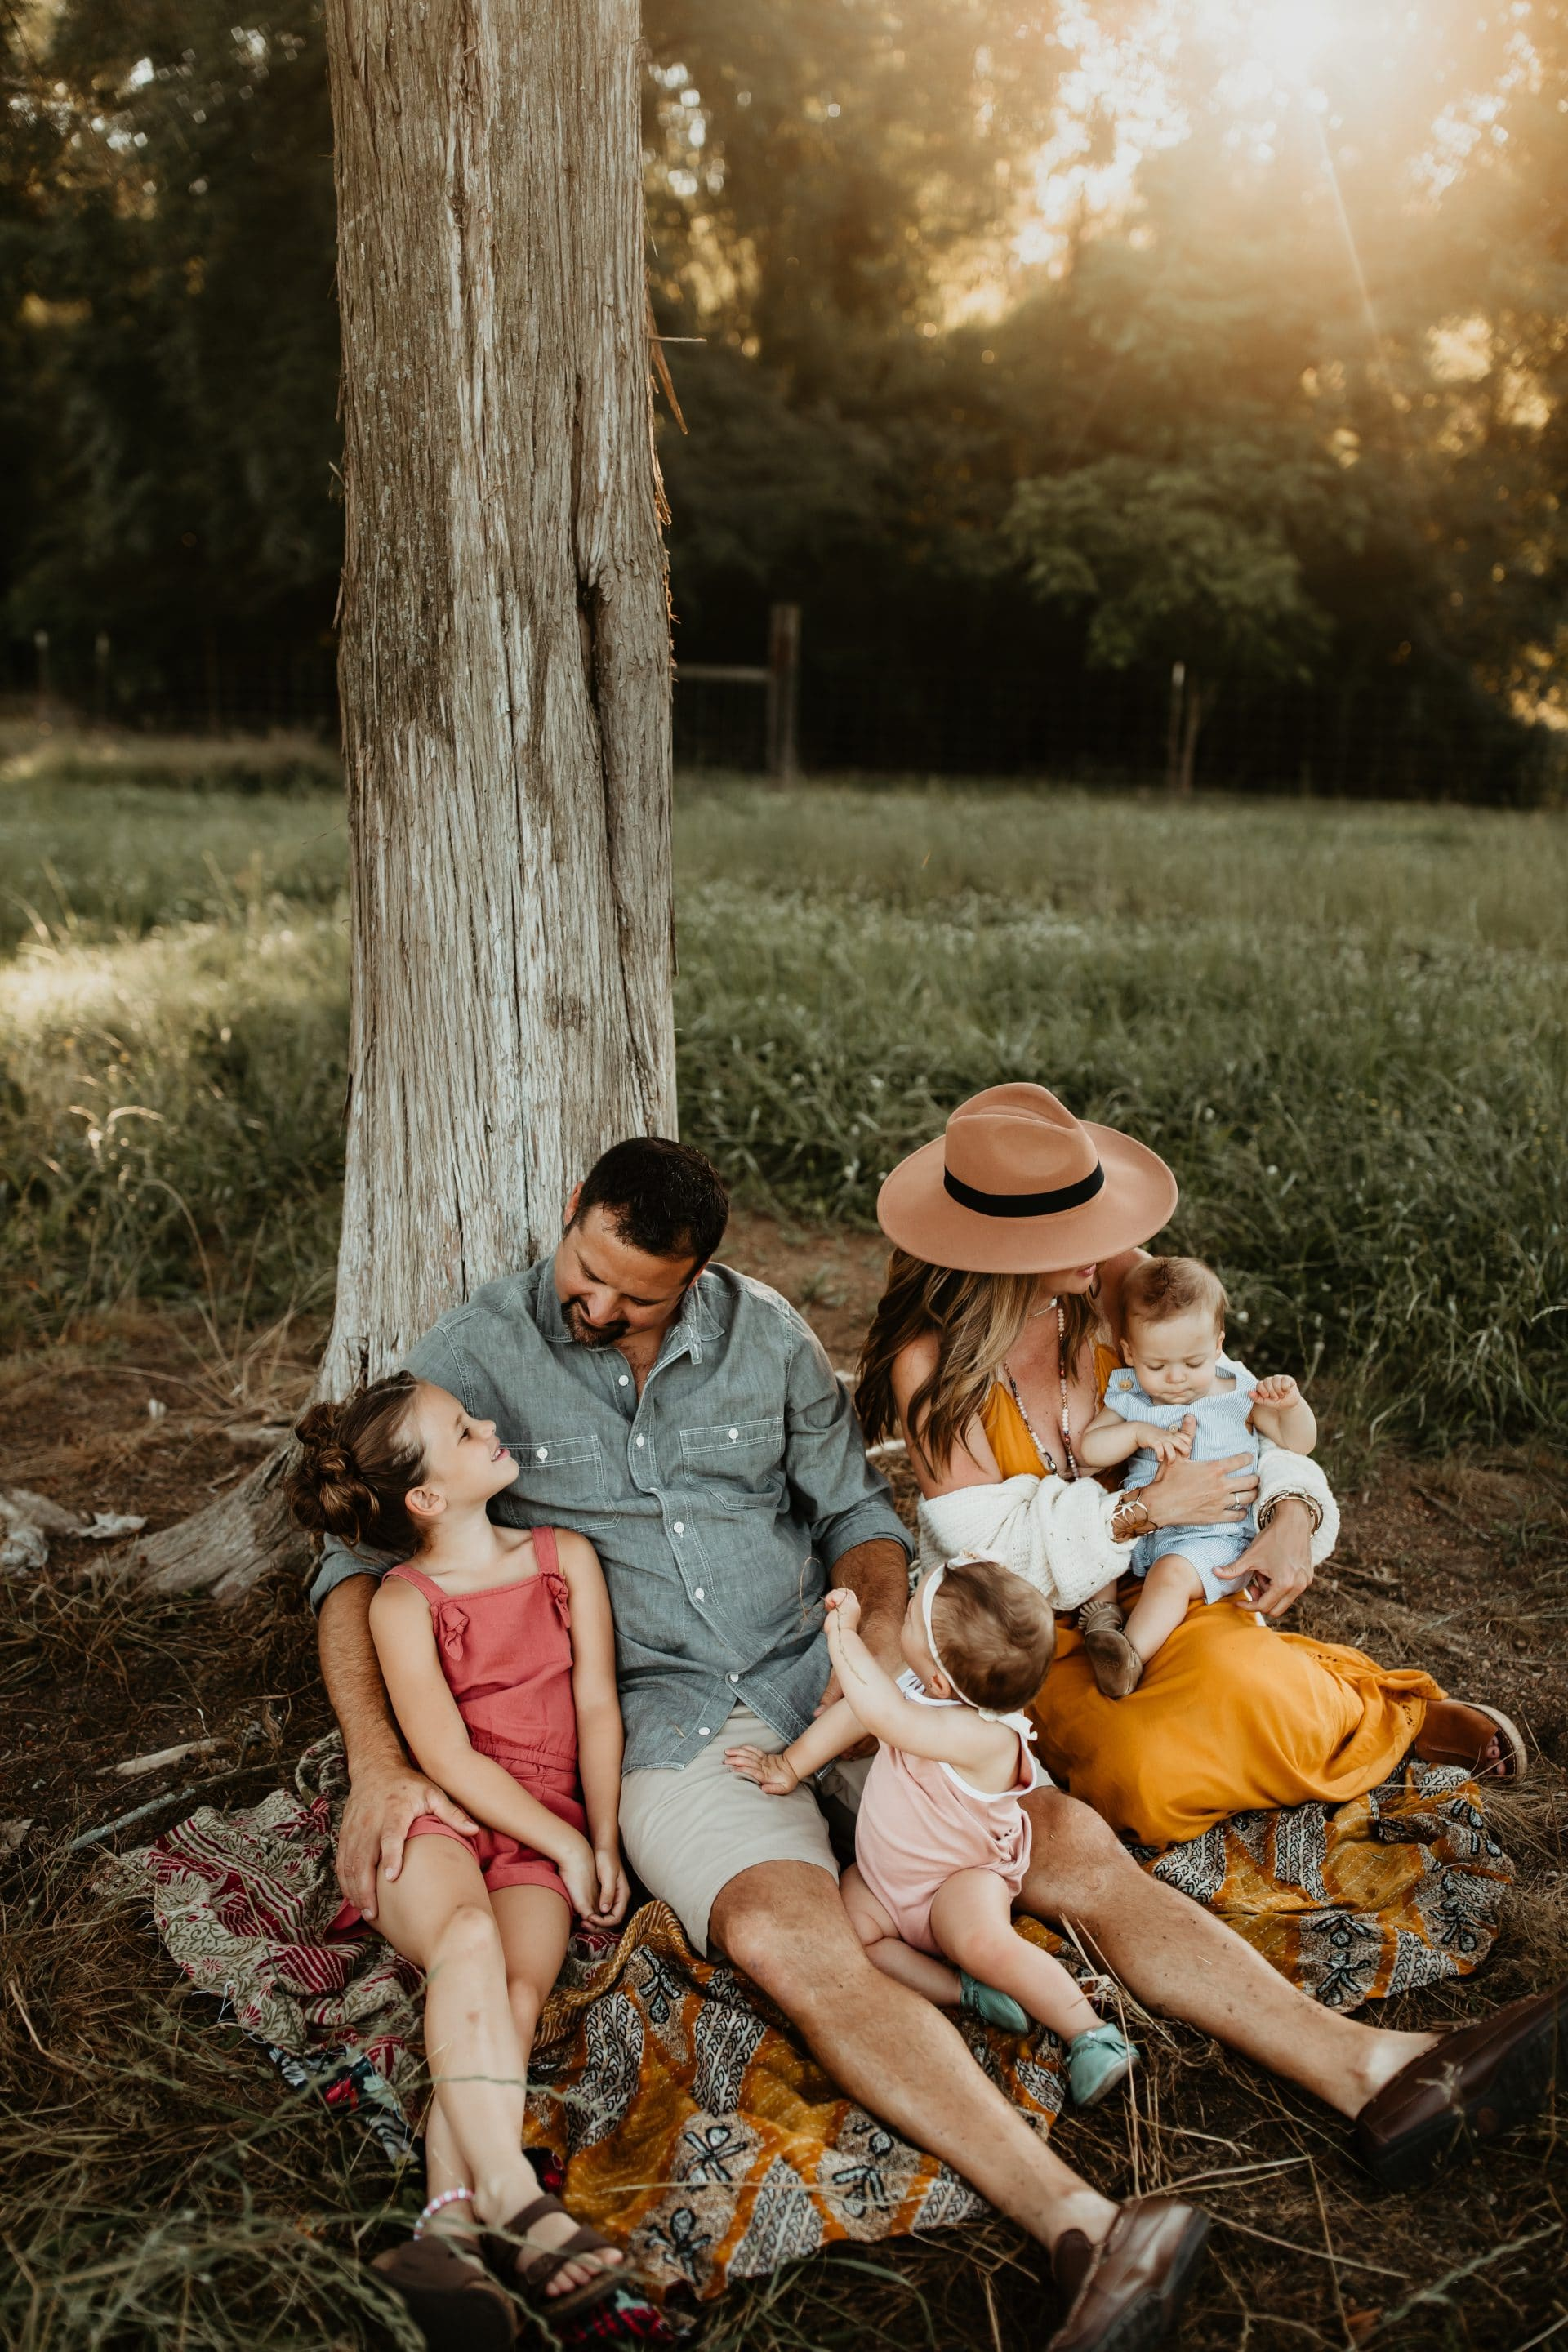 A family photoshoot from Jenny Leigh Smith Photography